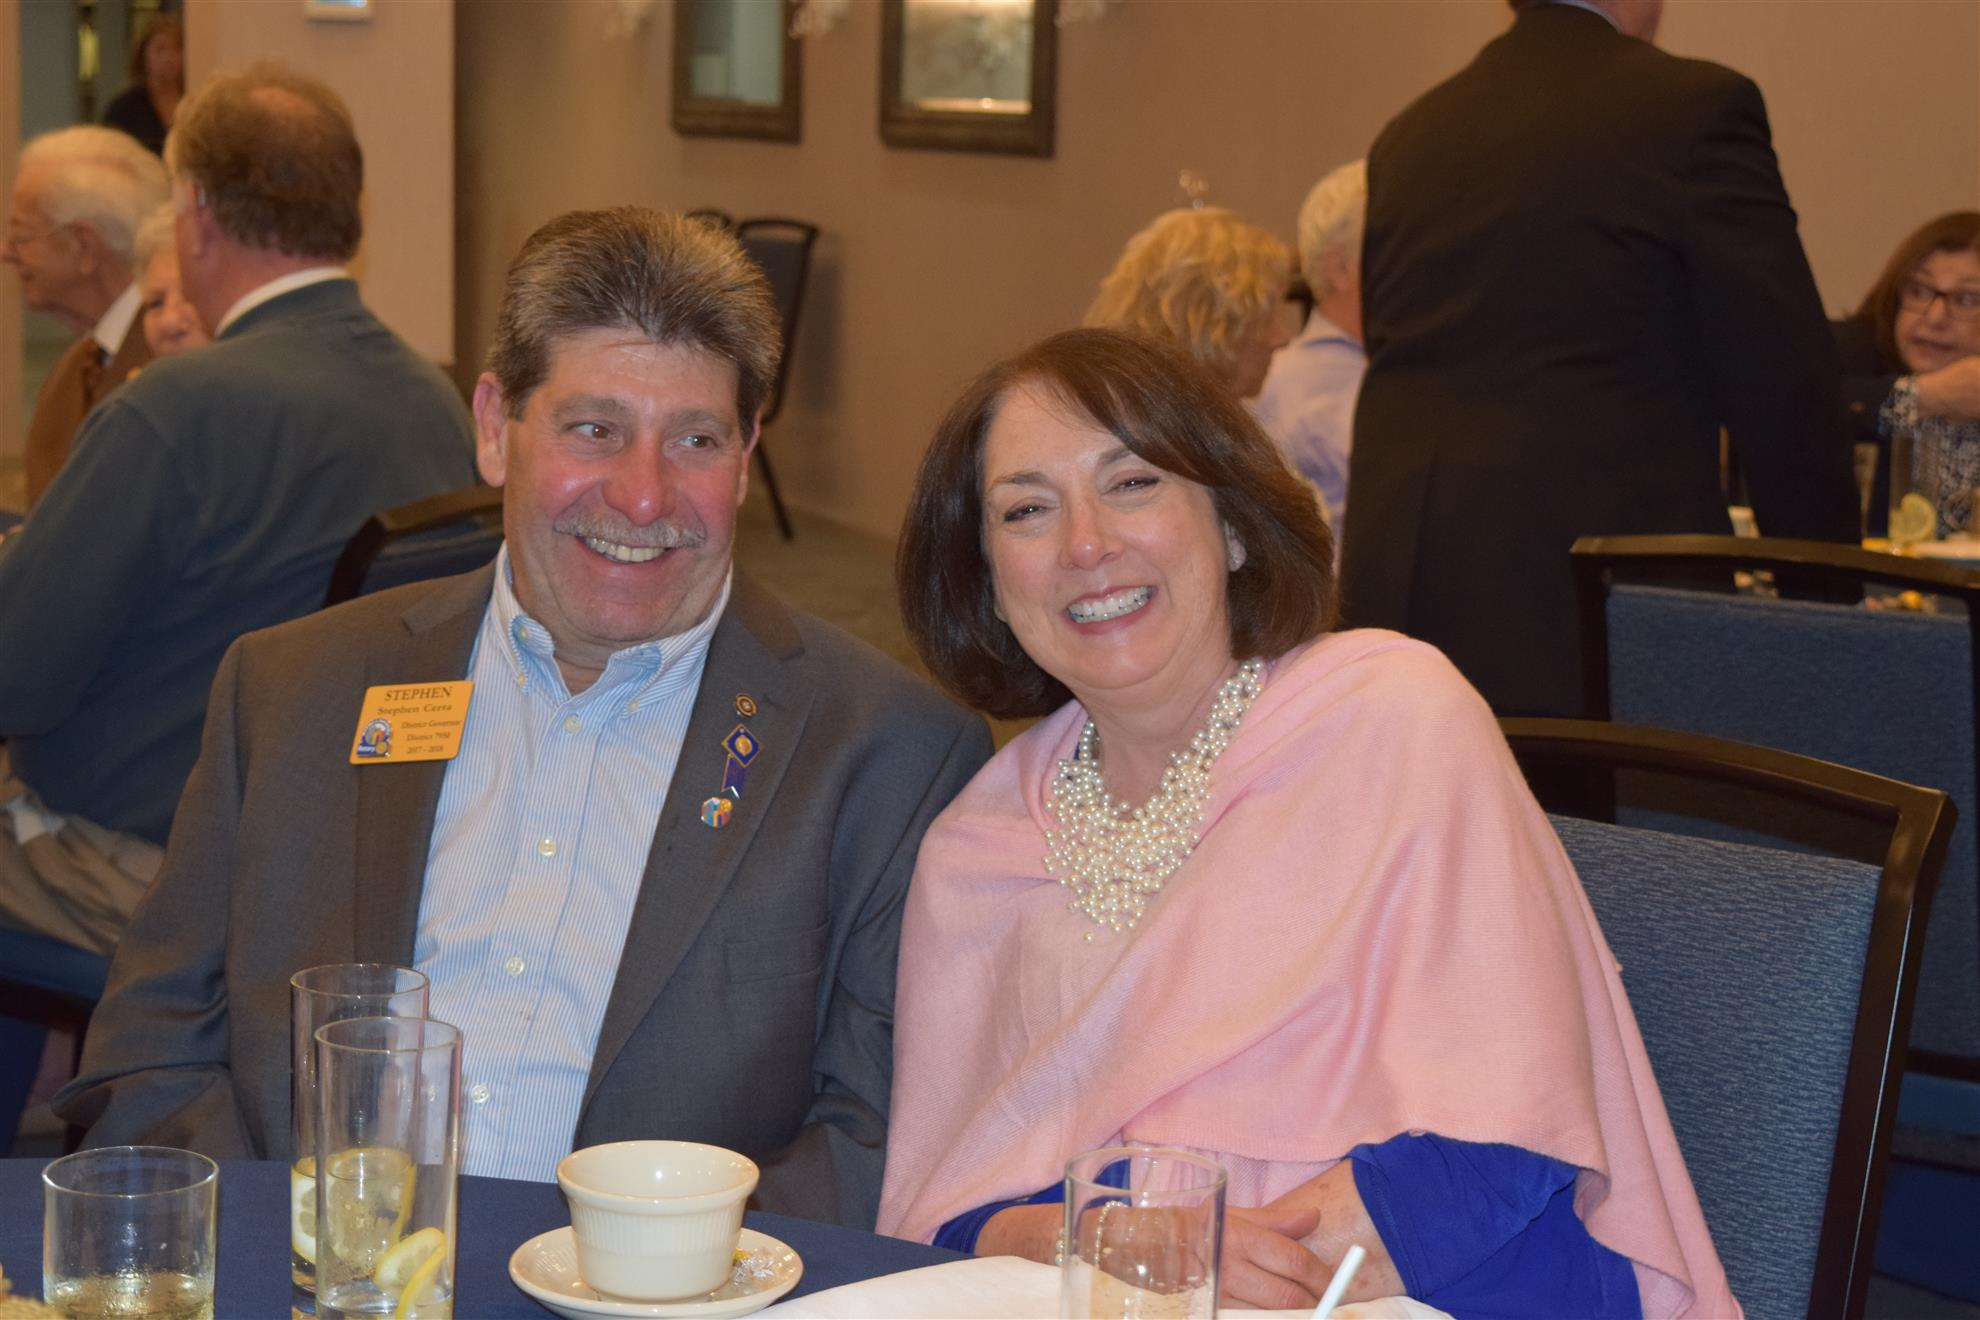 DG Steve Certa and First Lady Paula